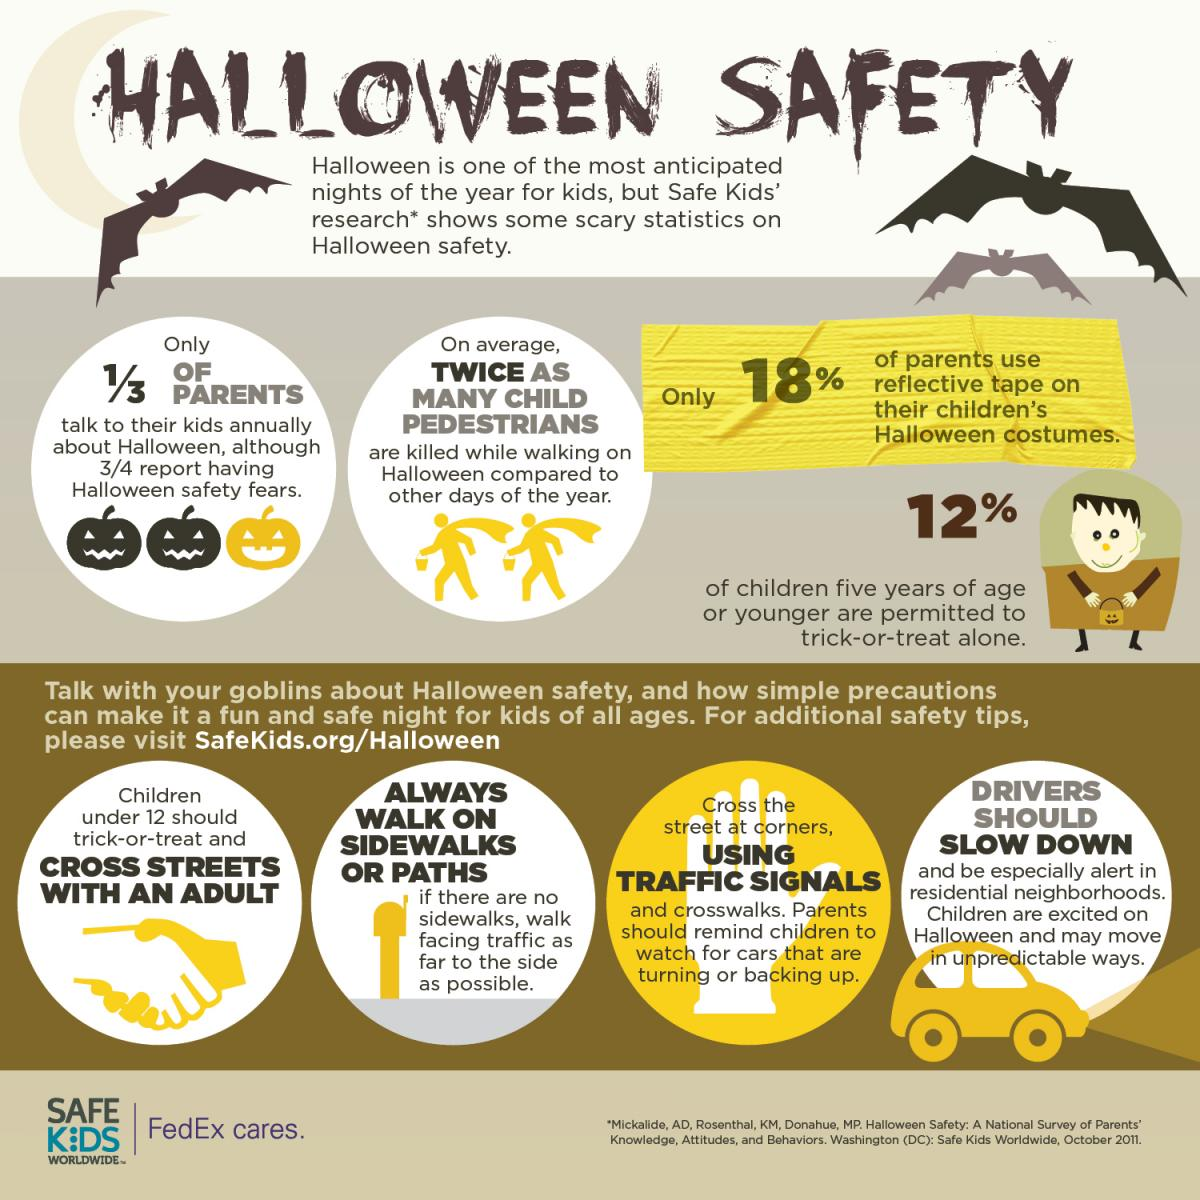 Halloween accident statistics are real. Pay attention when you're driving.